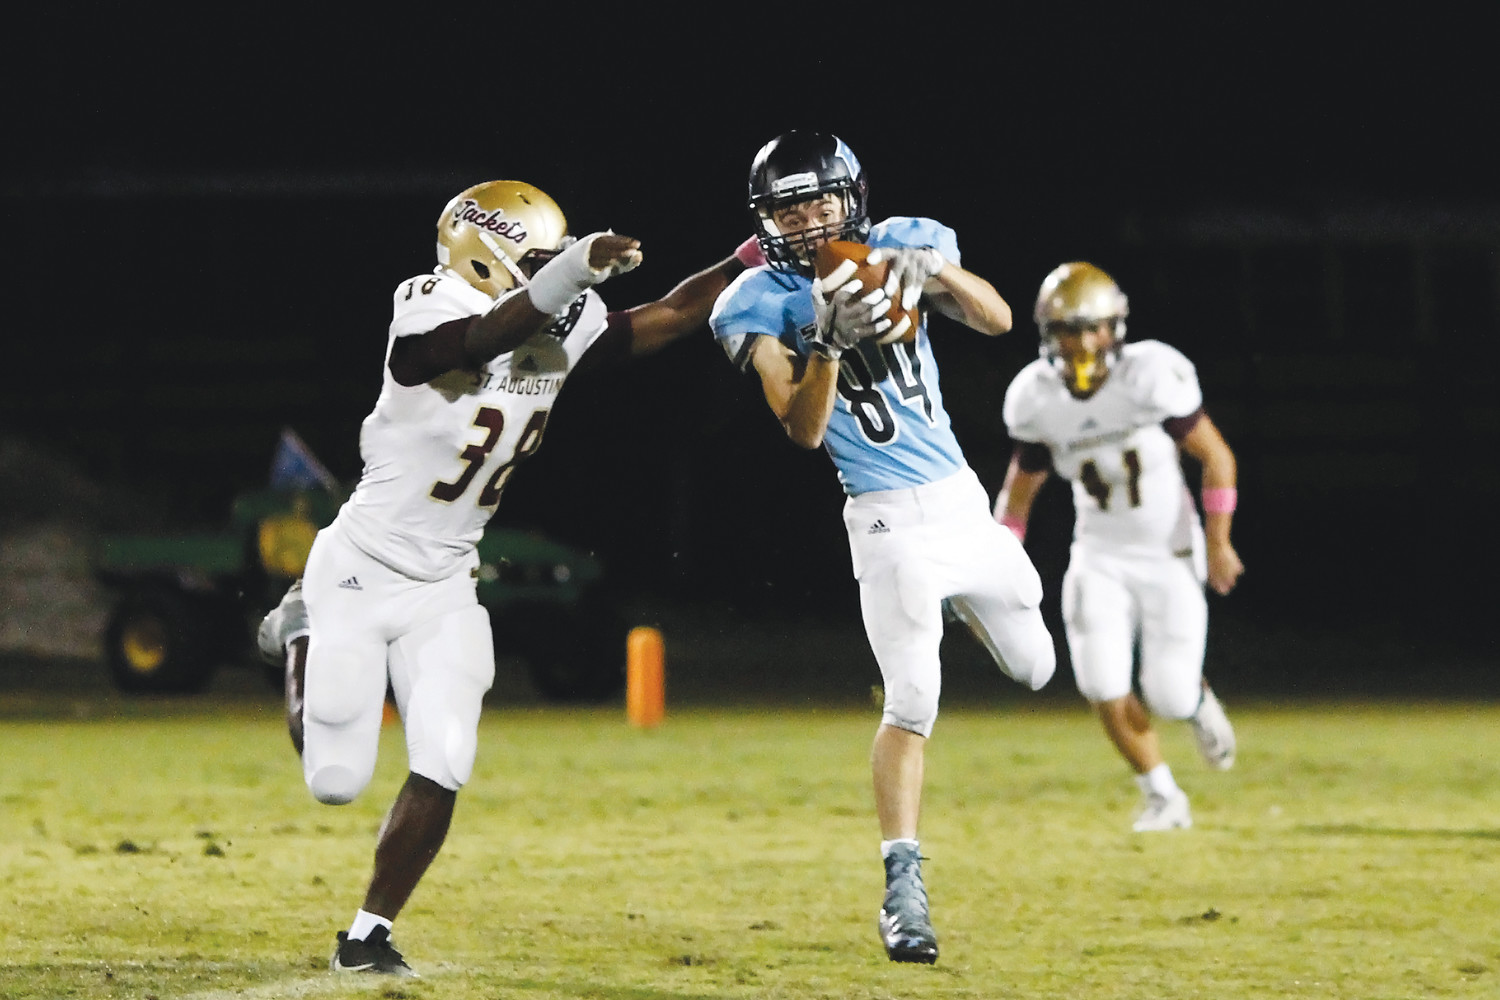 Cade D'Errico makes the catch for a Ponte Vedra first down.